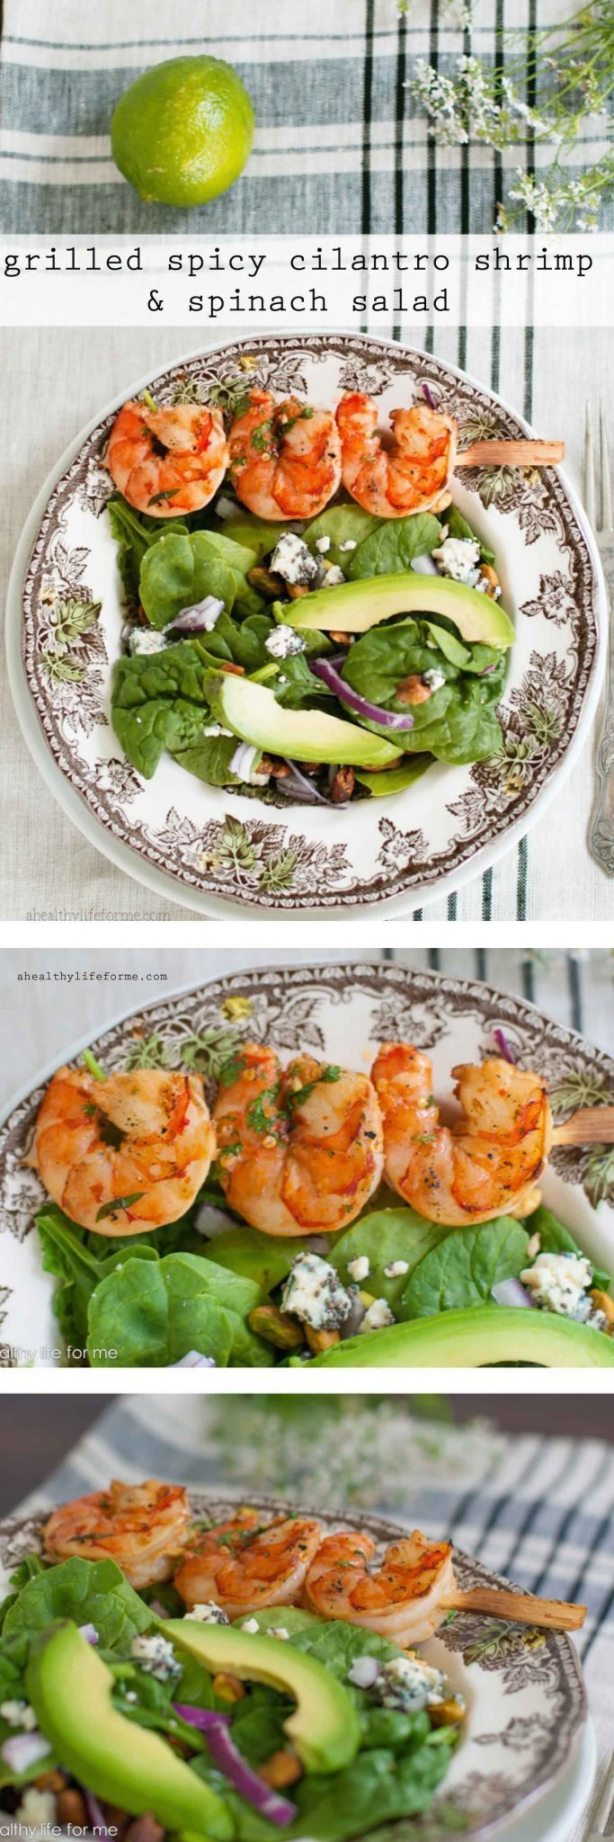 Grilled Spicy Cilantro Shrimp Recipe | ahealthylifeforme.com